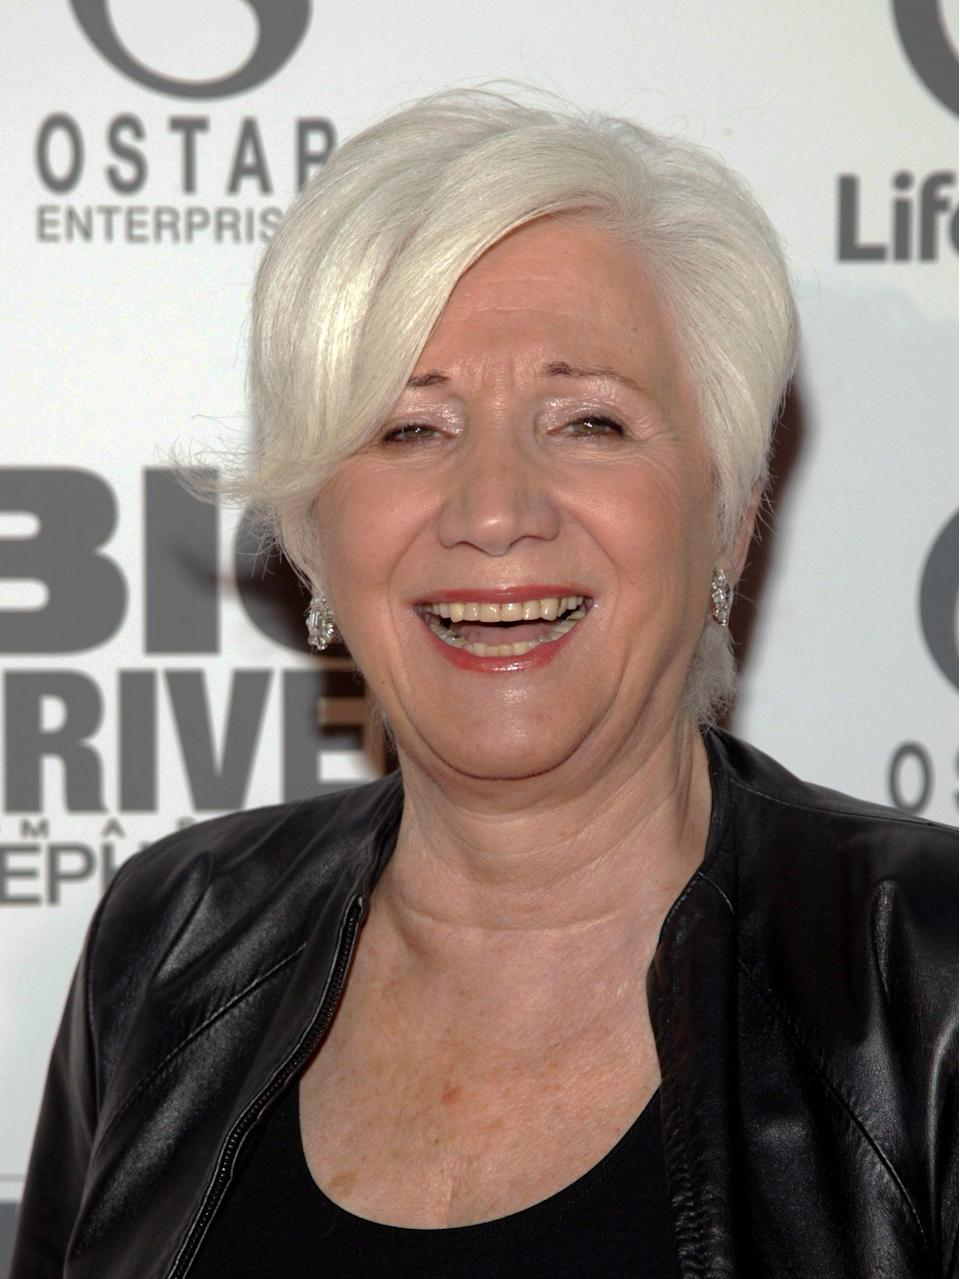 Olympia Dukakis, pictured in 2014. She has died aged 89.  (Andy Kropa /Invision/AP)